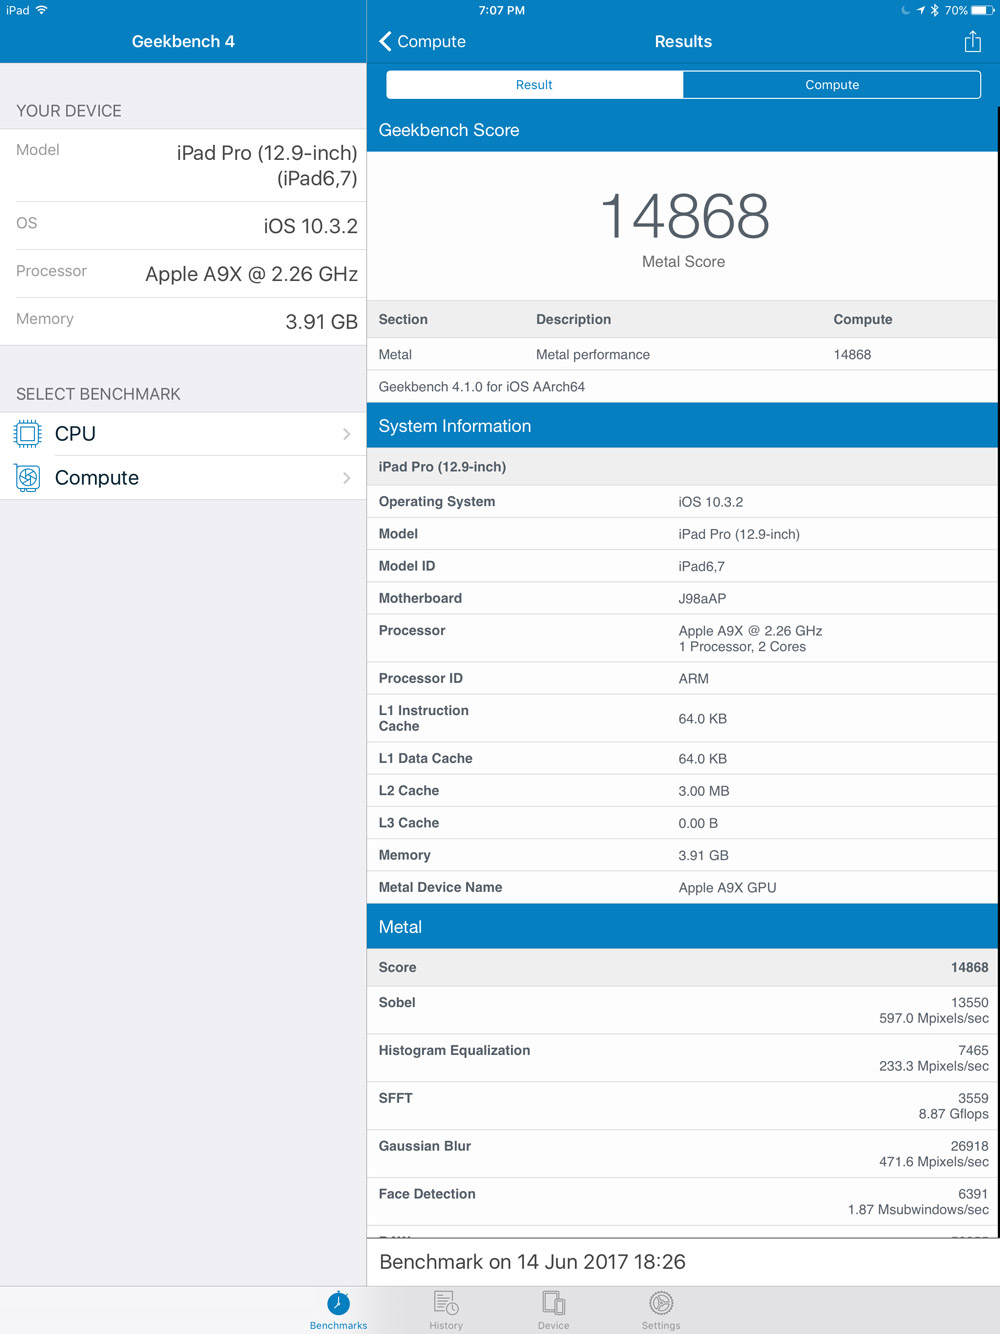 Geekbench 4 metal/video benchmark for iPad Pro 12.9-inch 2017